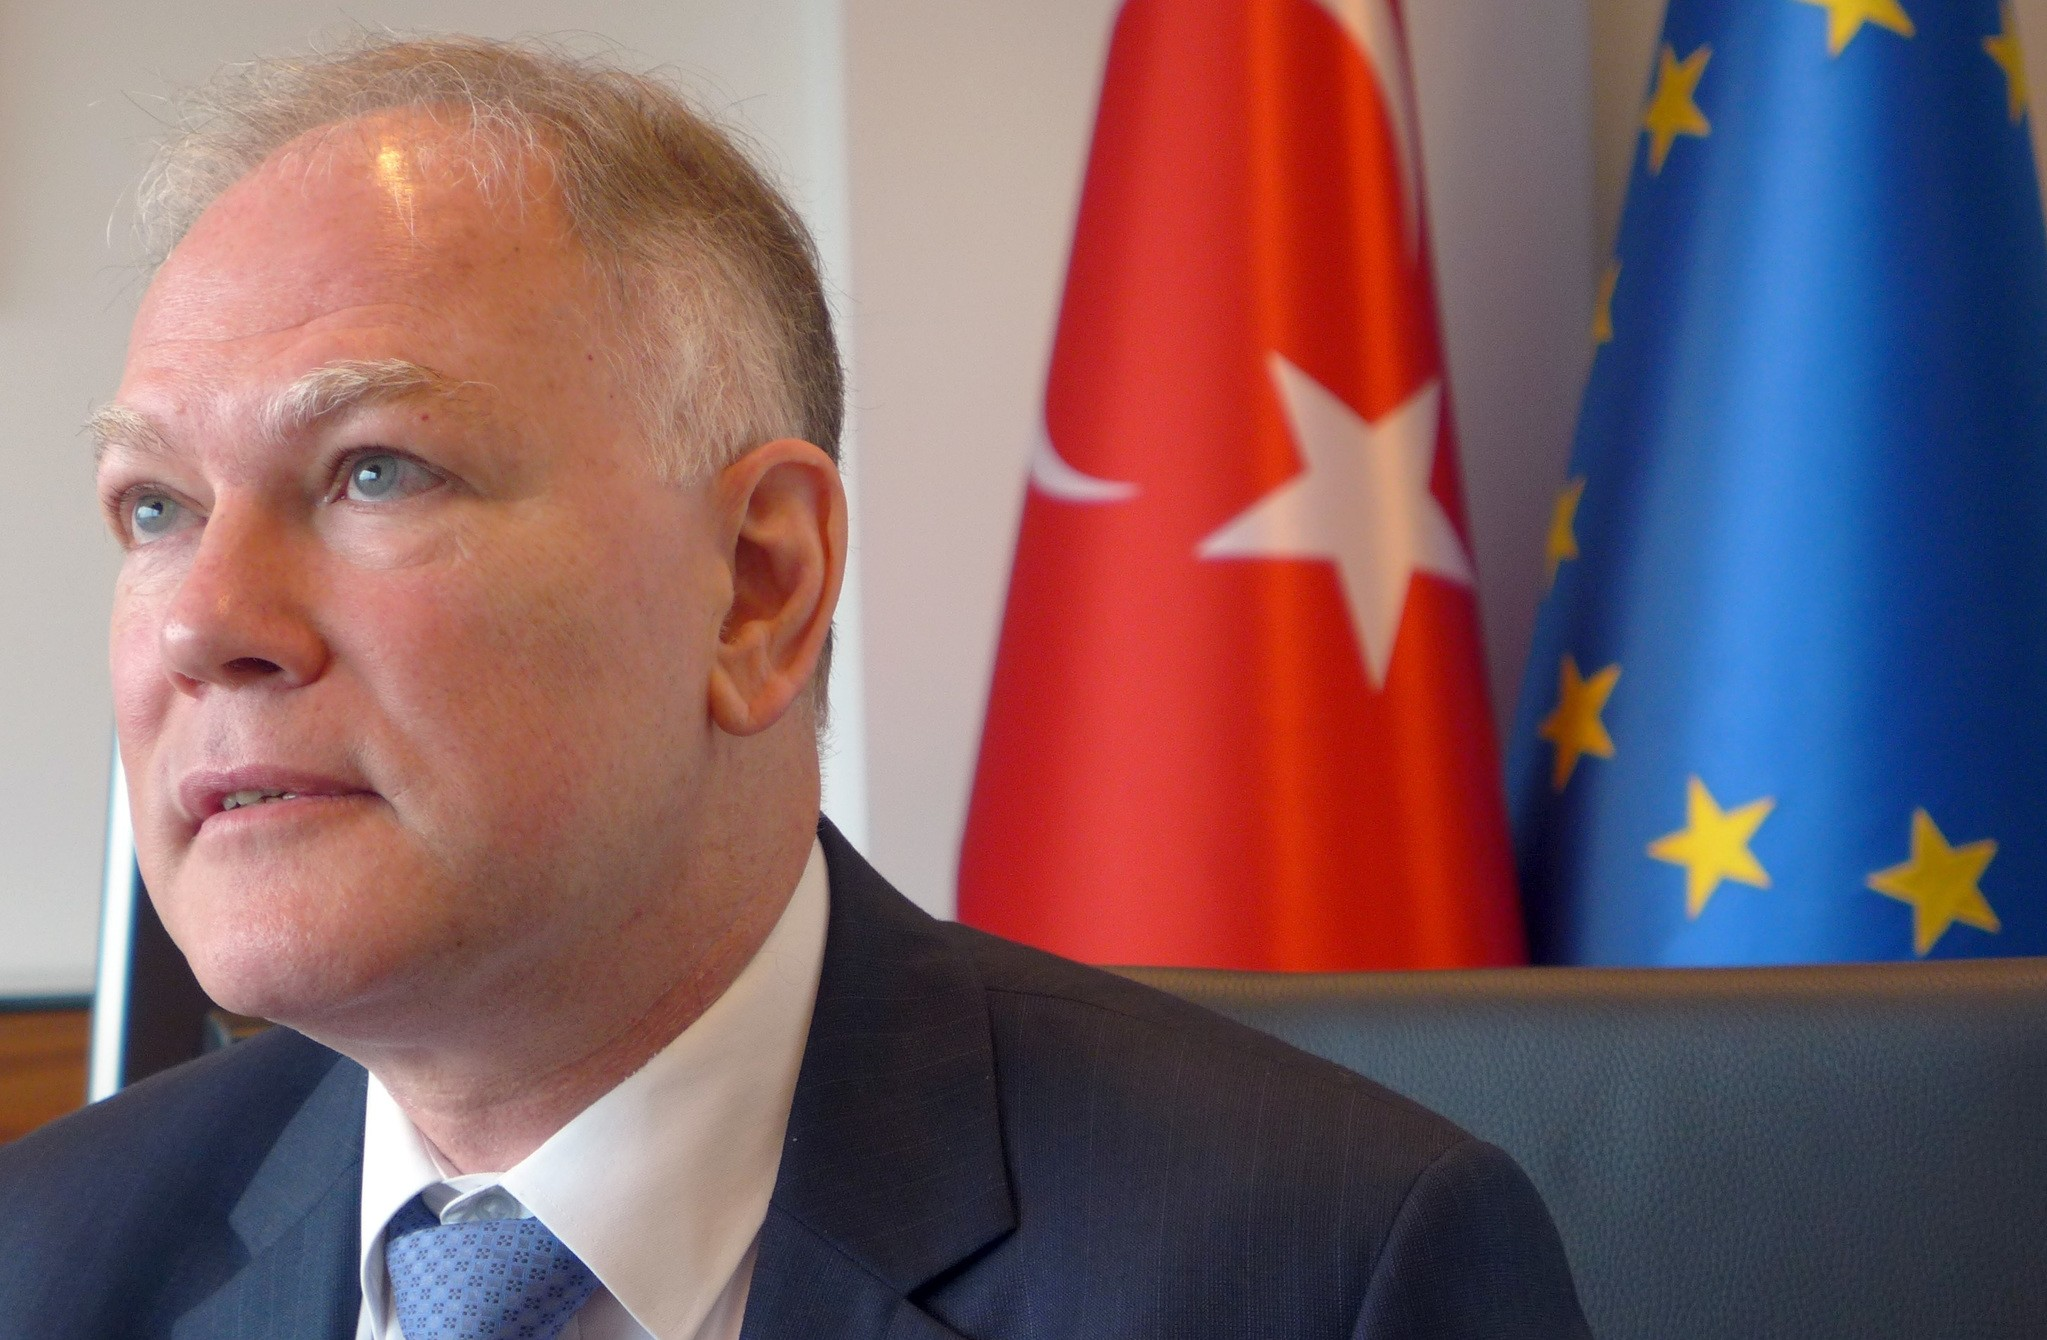 Turkey's Ambassador to the European Union Selim Yenel speaks during an interview at the Turkish embassy in Brussels on Thursday, Aug. 11, 2016. (AP Photo)